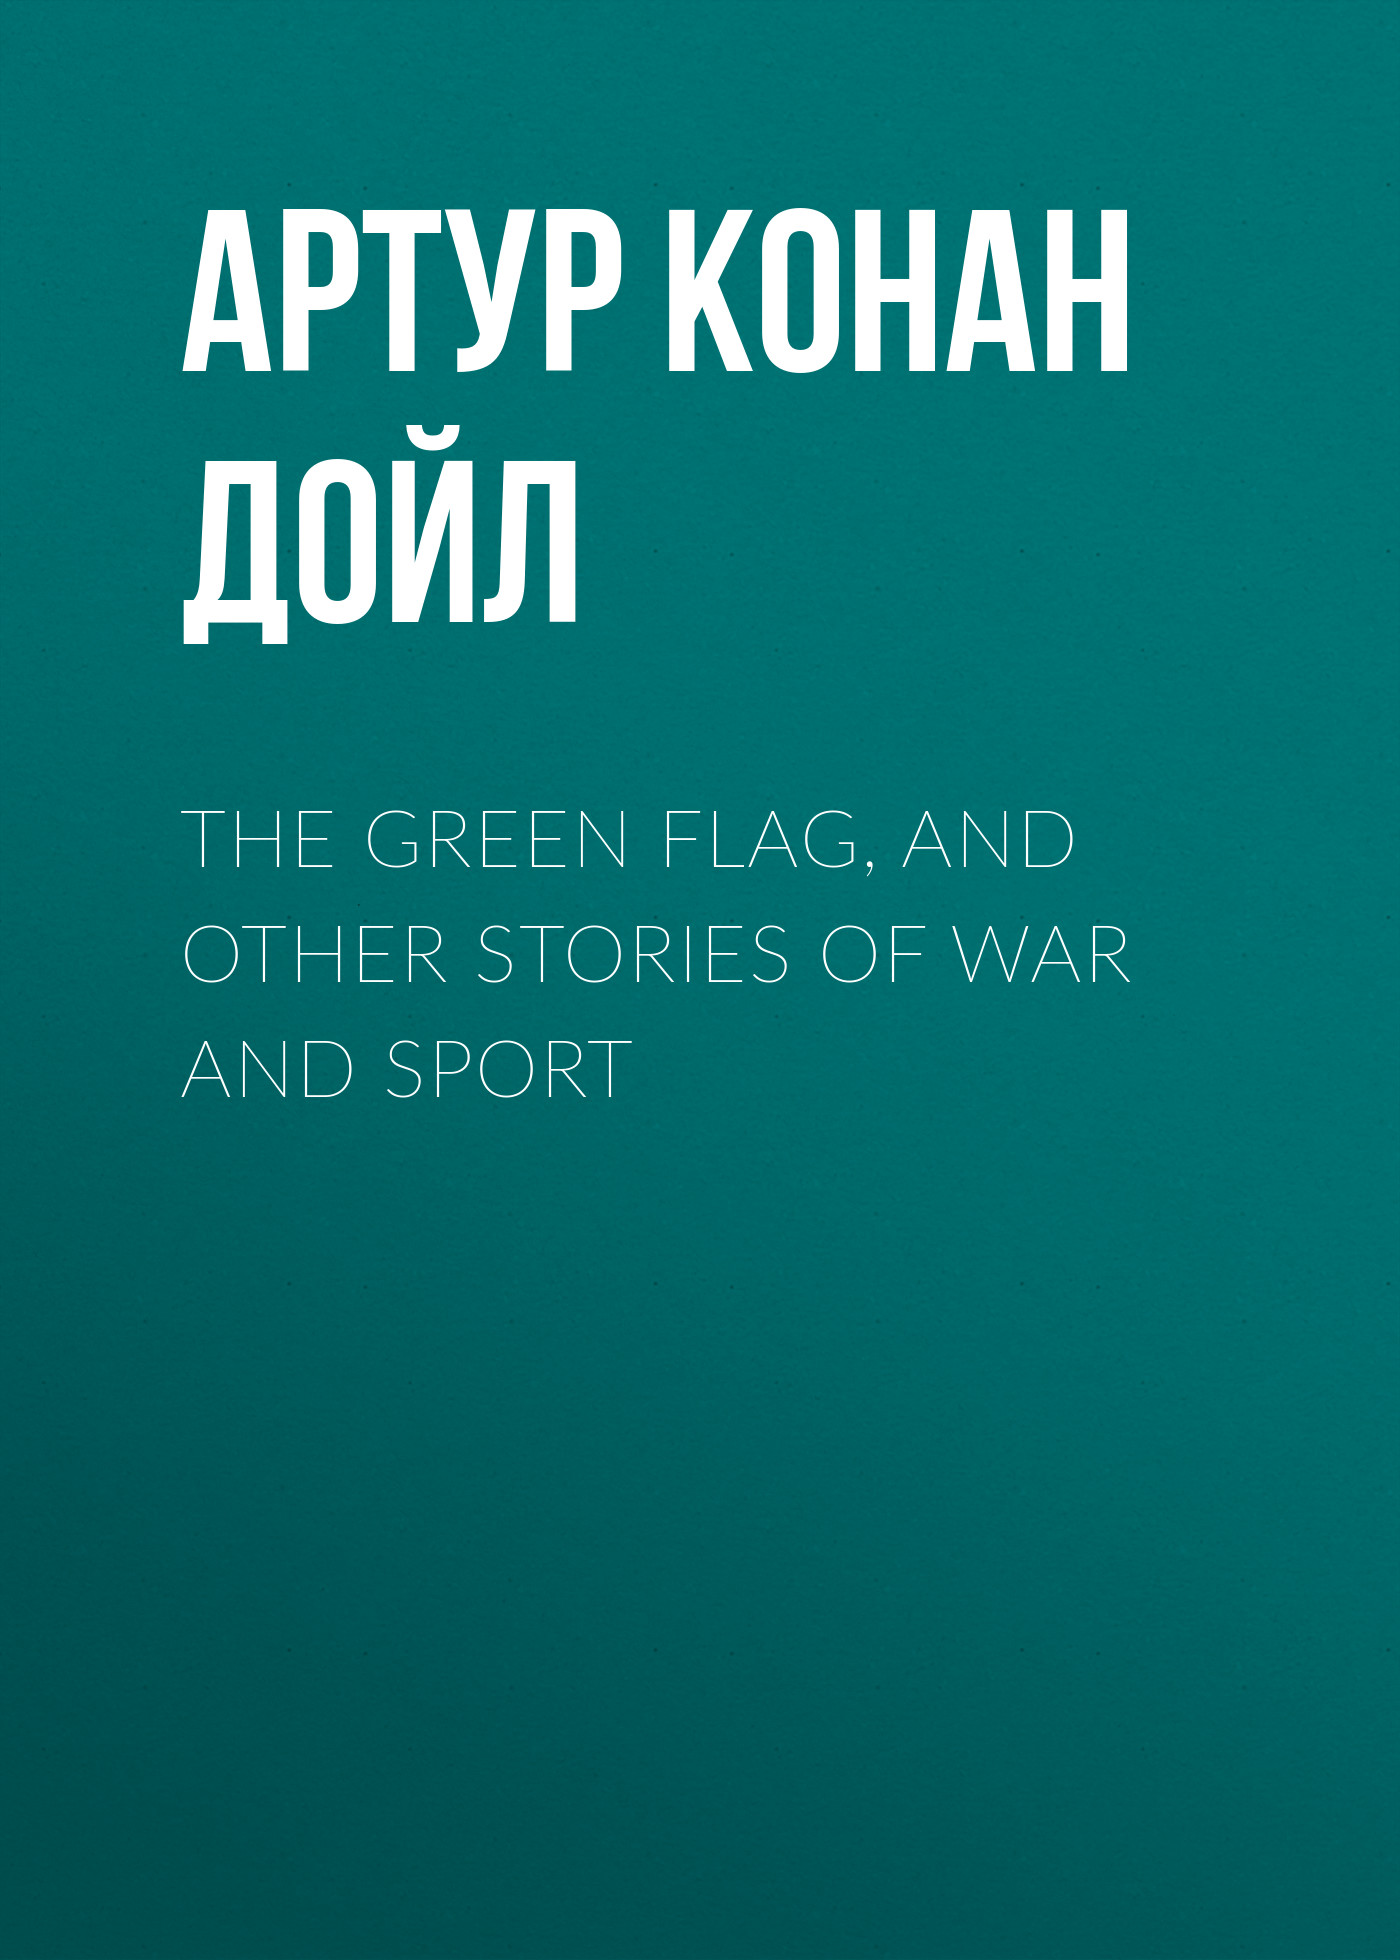 Артур Конан Дойл The Green Flag, and Other Stories of War and Sport артур конан дойл the stark munro letters